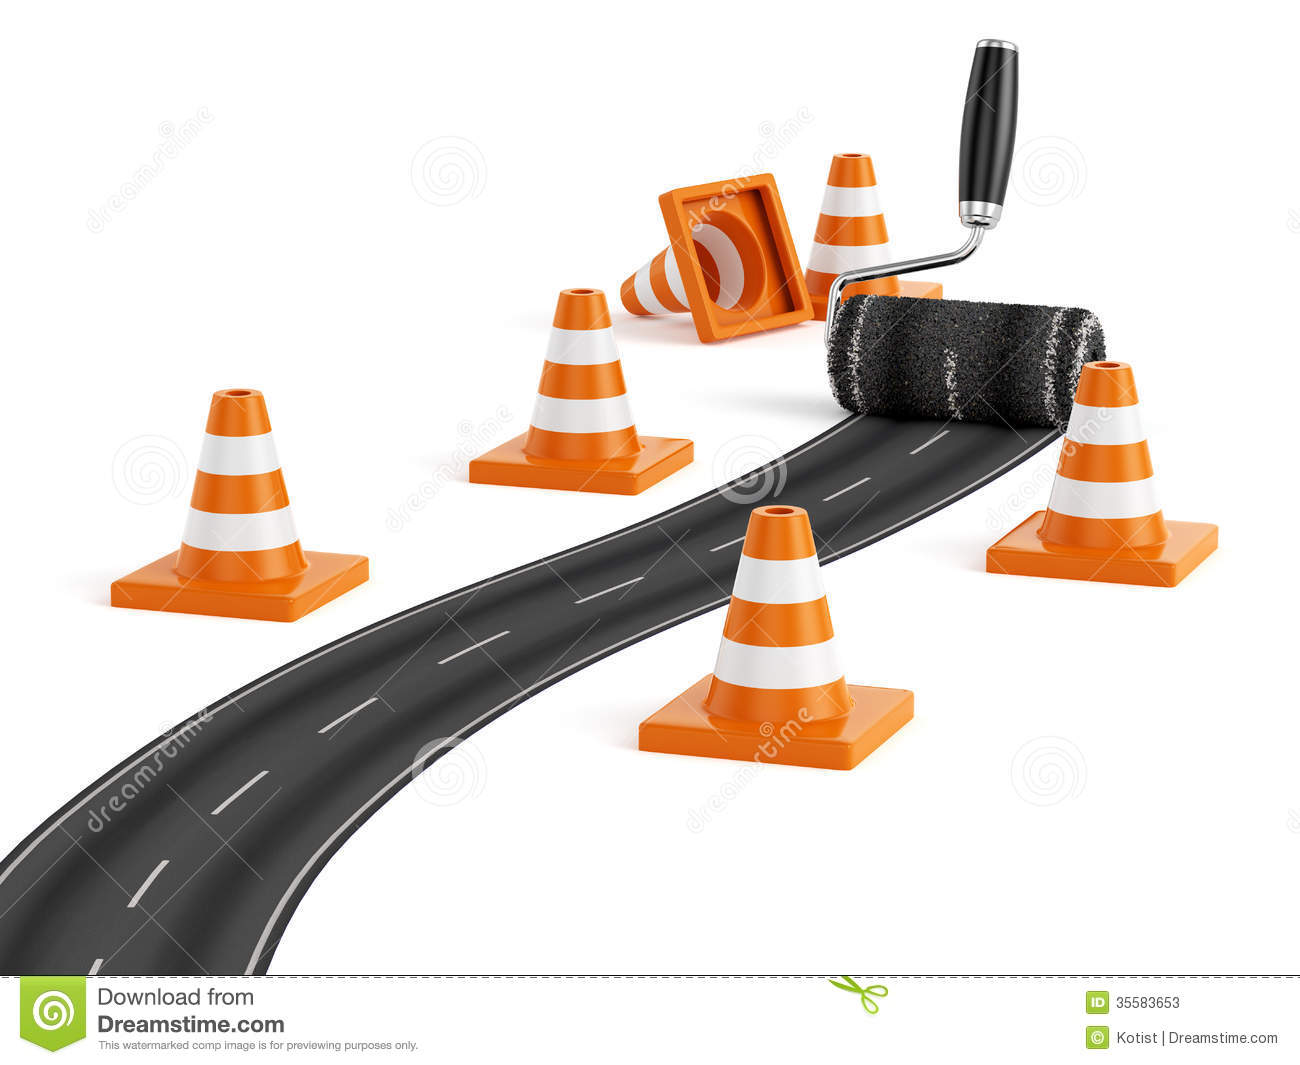 ... of painting the road with roller brush. Road construction concept